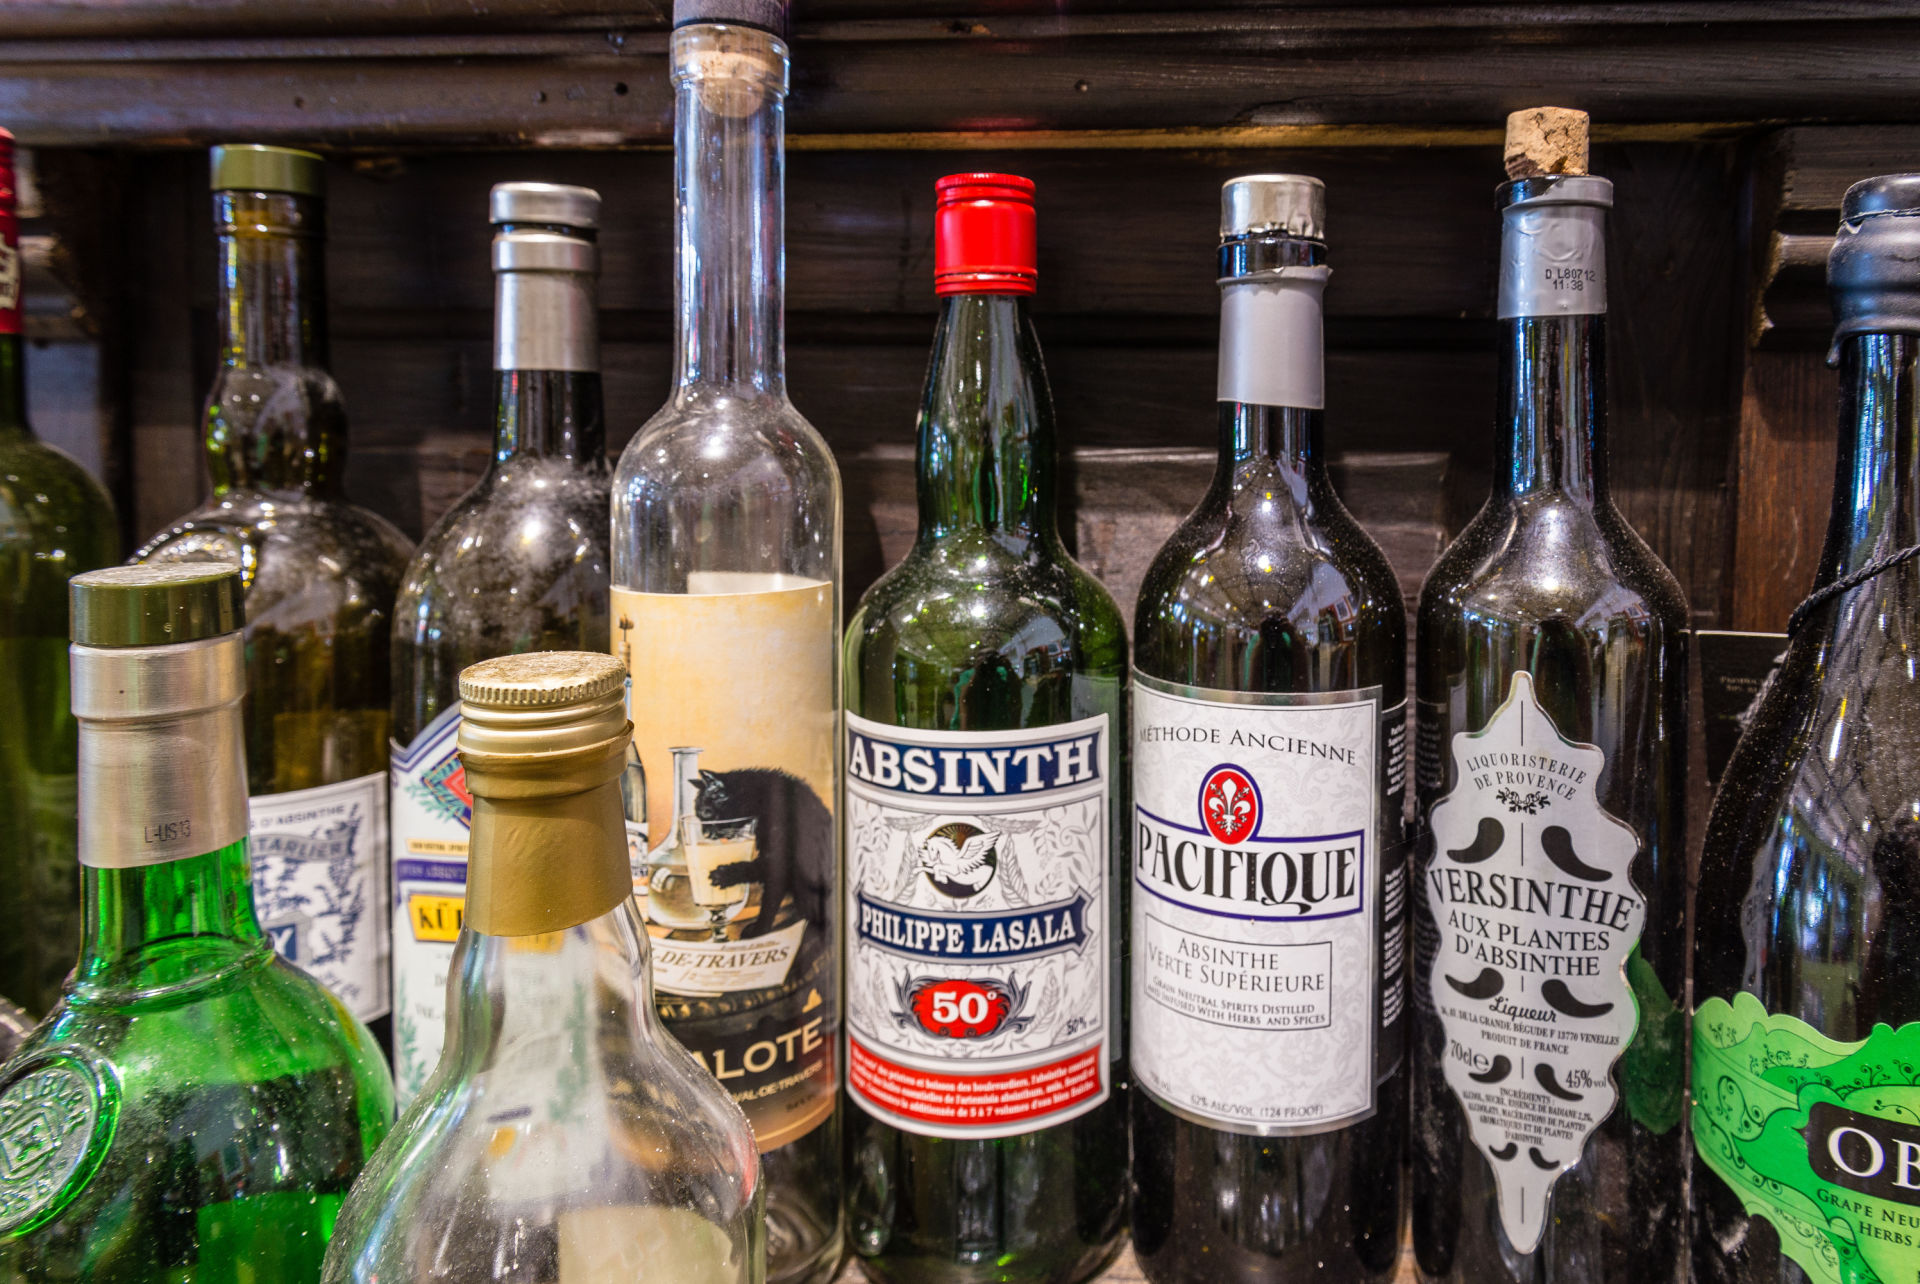 Bottles of absinthe line the bar at a display dedicated to the drink at the Southern Food and Beverage Museum in New Orleans.